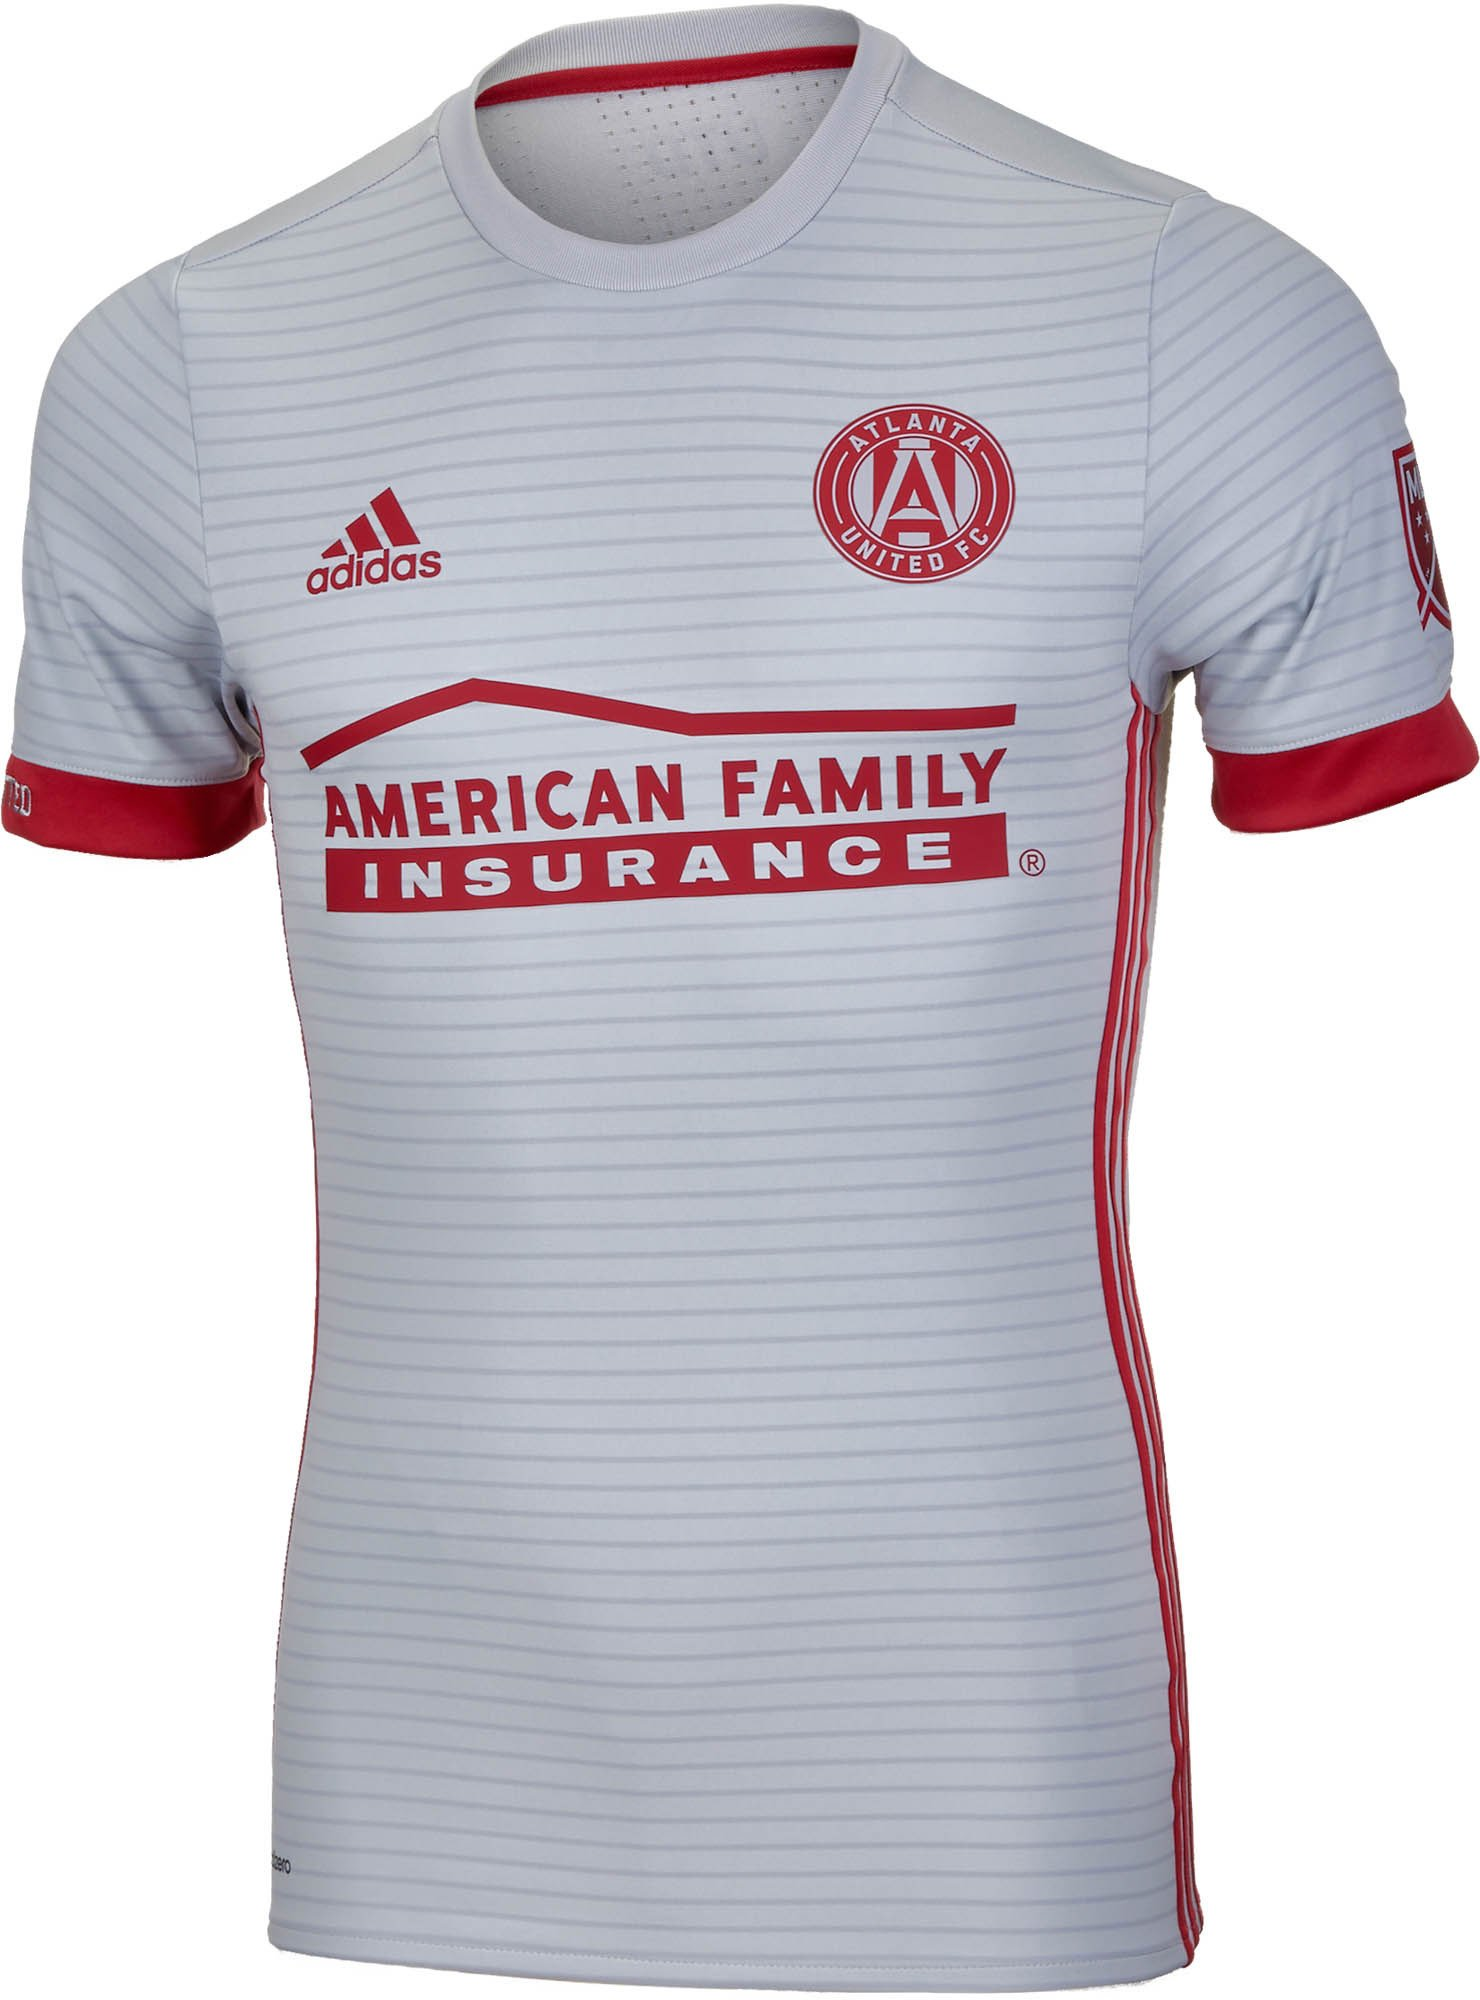 best service 679e7 ac2c4 2017/18 adidas Atlanta United Authentic Away Jersey